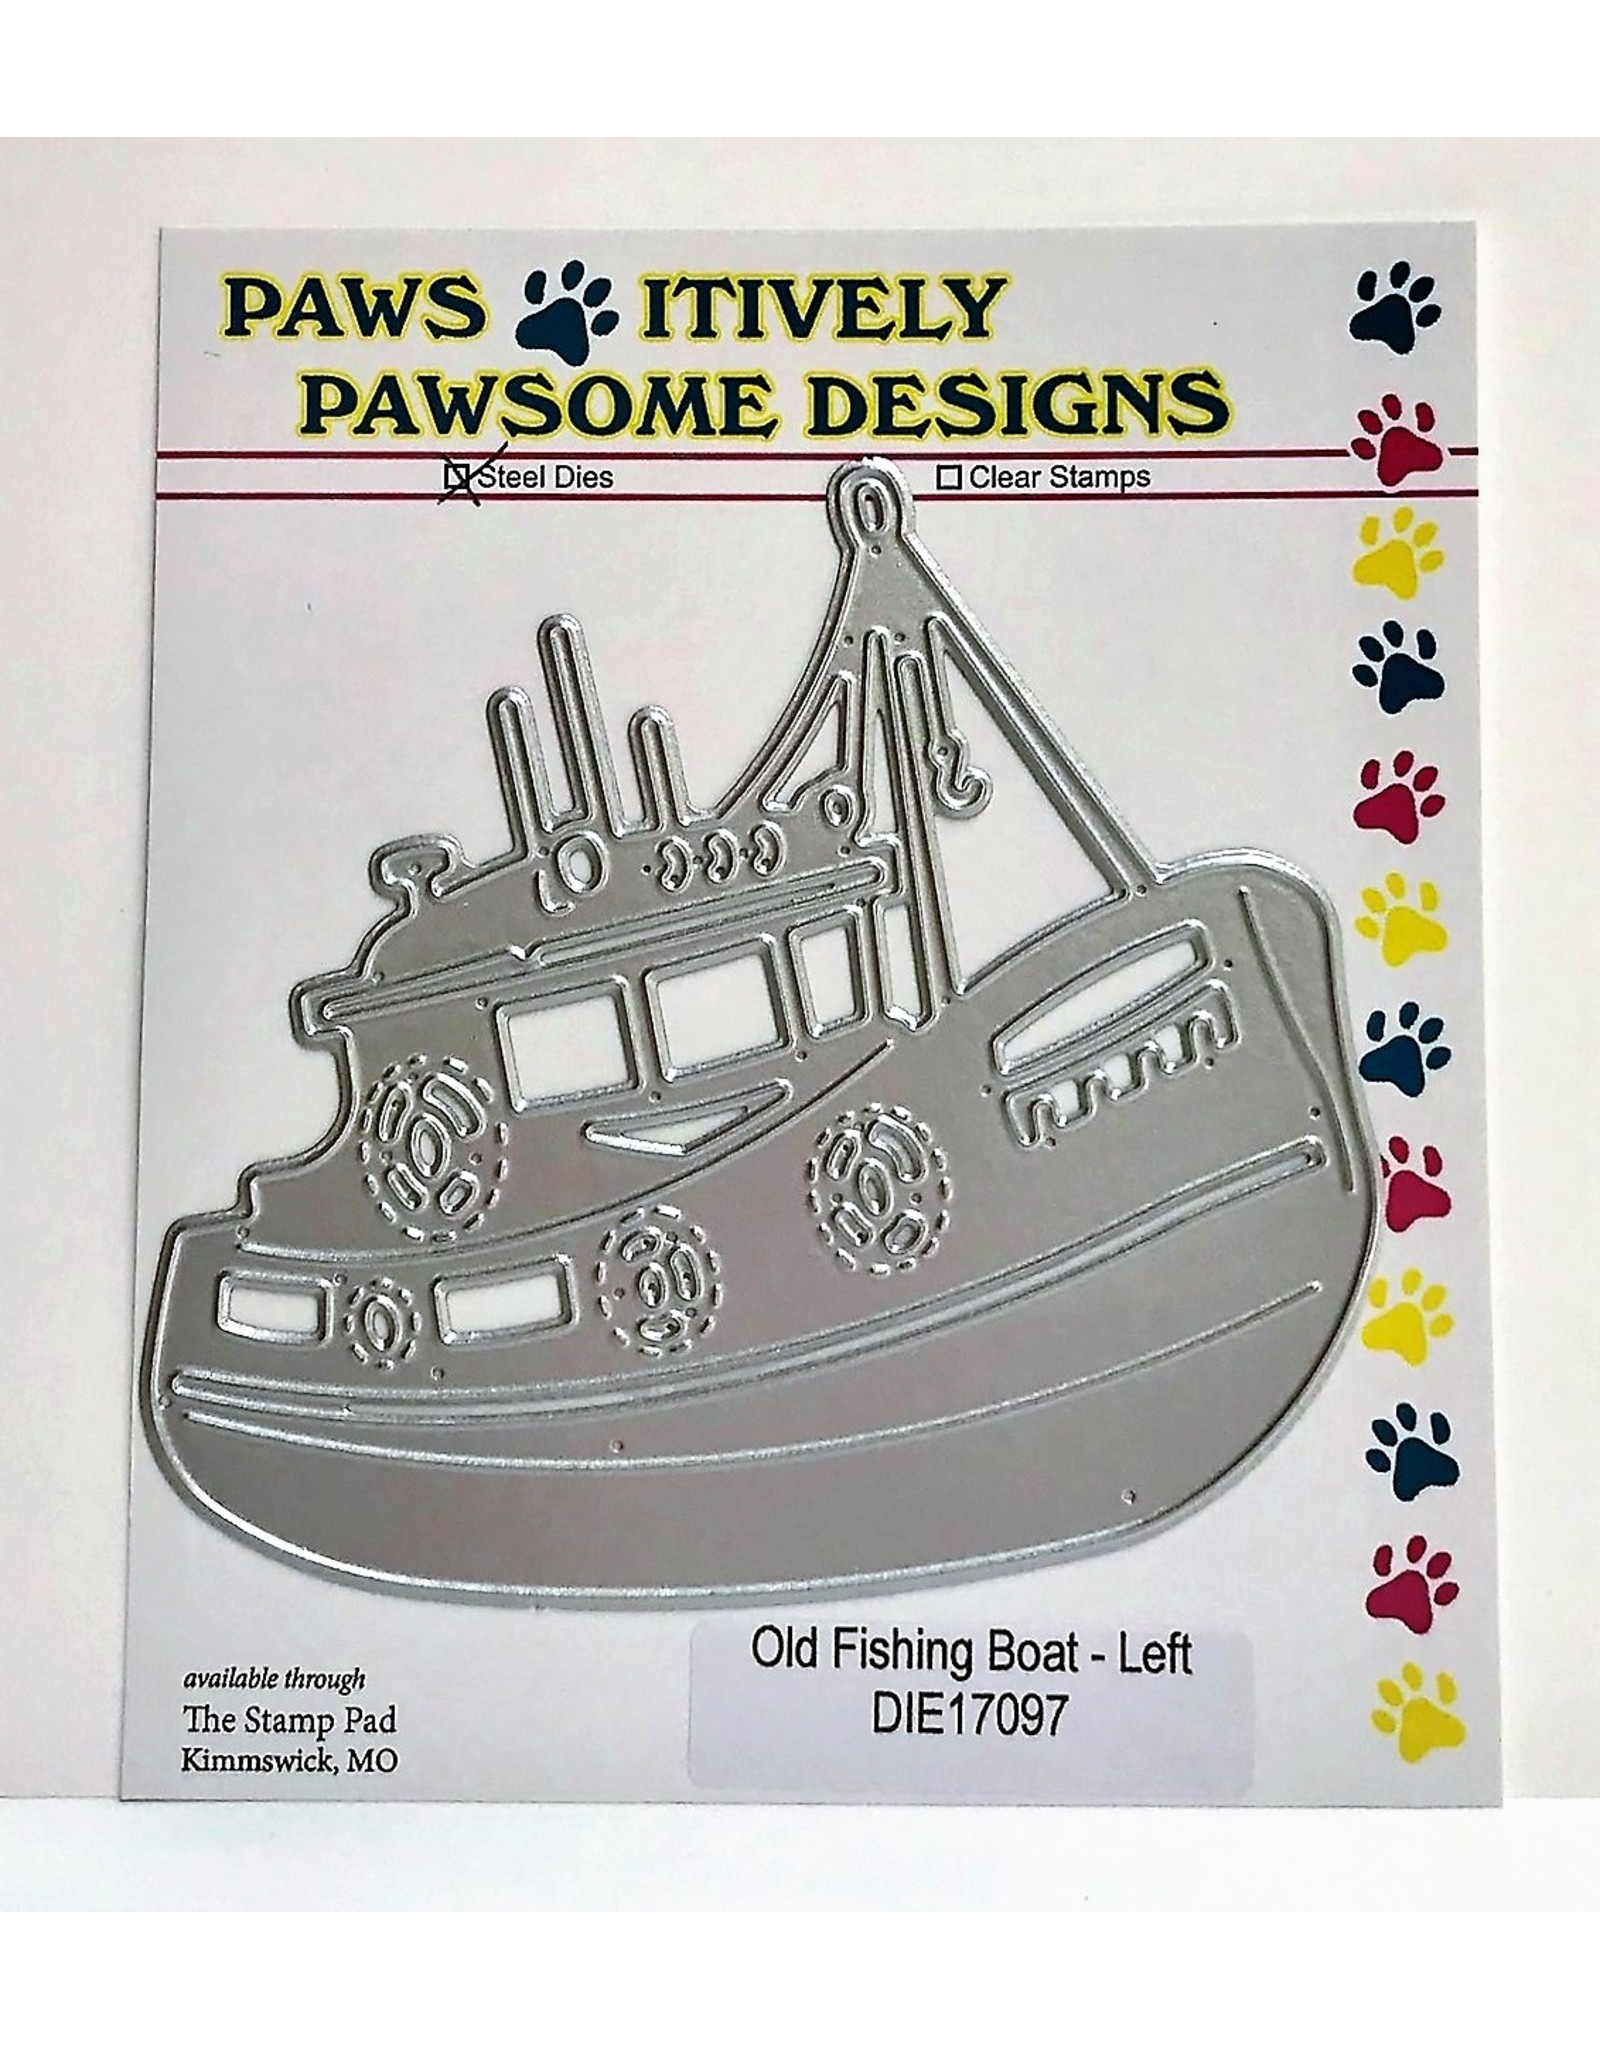 Paws-Itively Pawsome Designs Old Fishing Boat (left) - Die